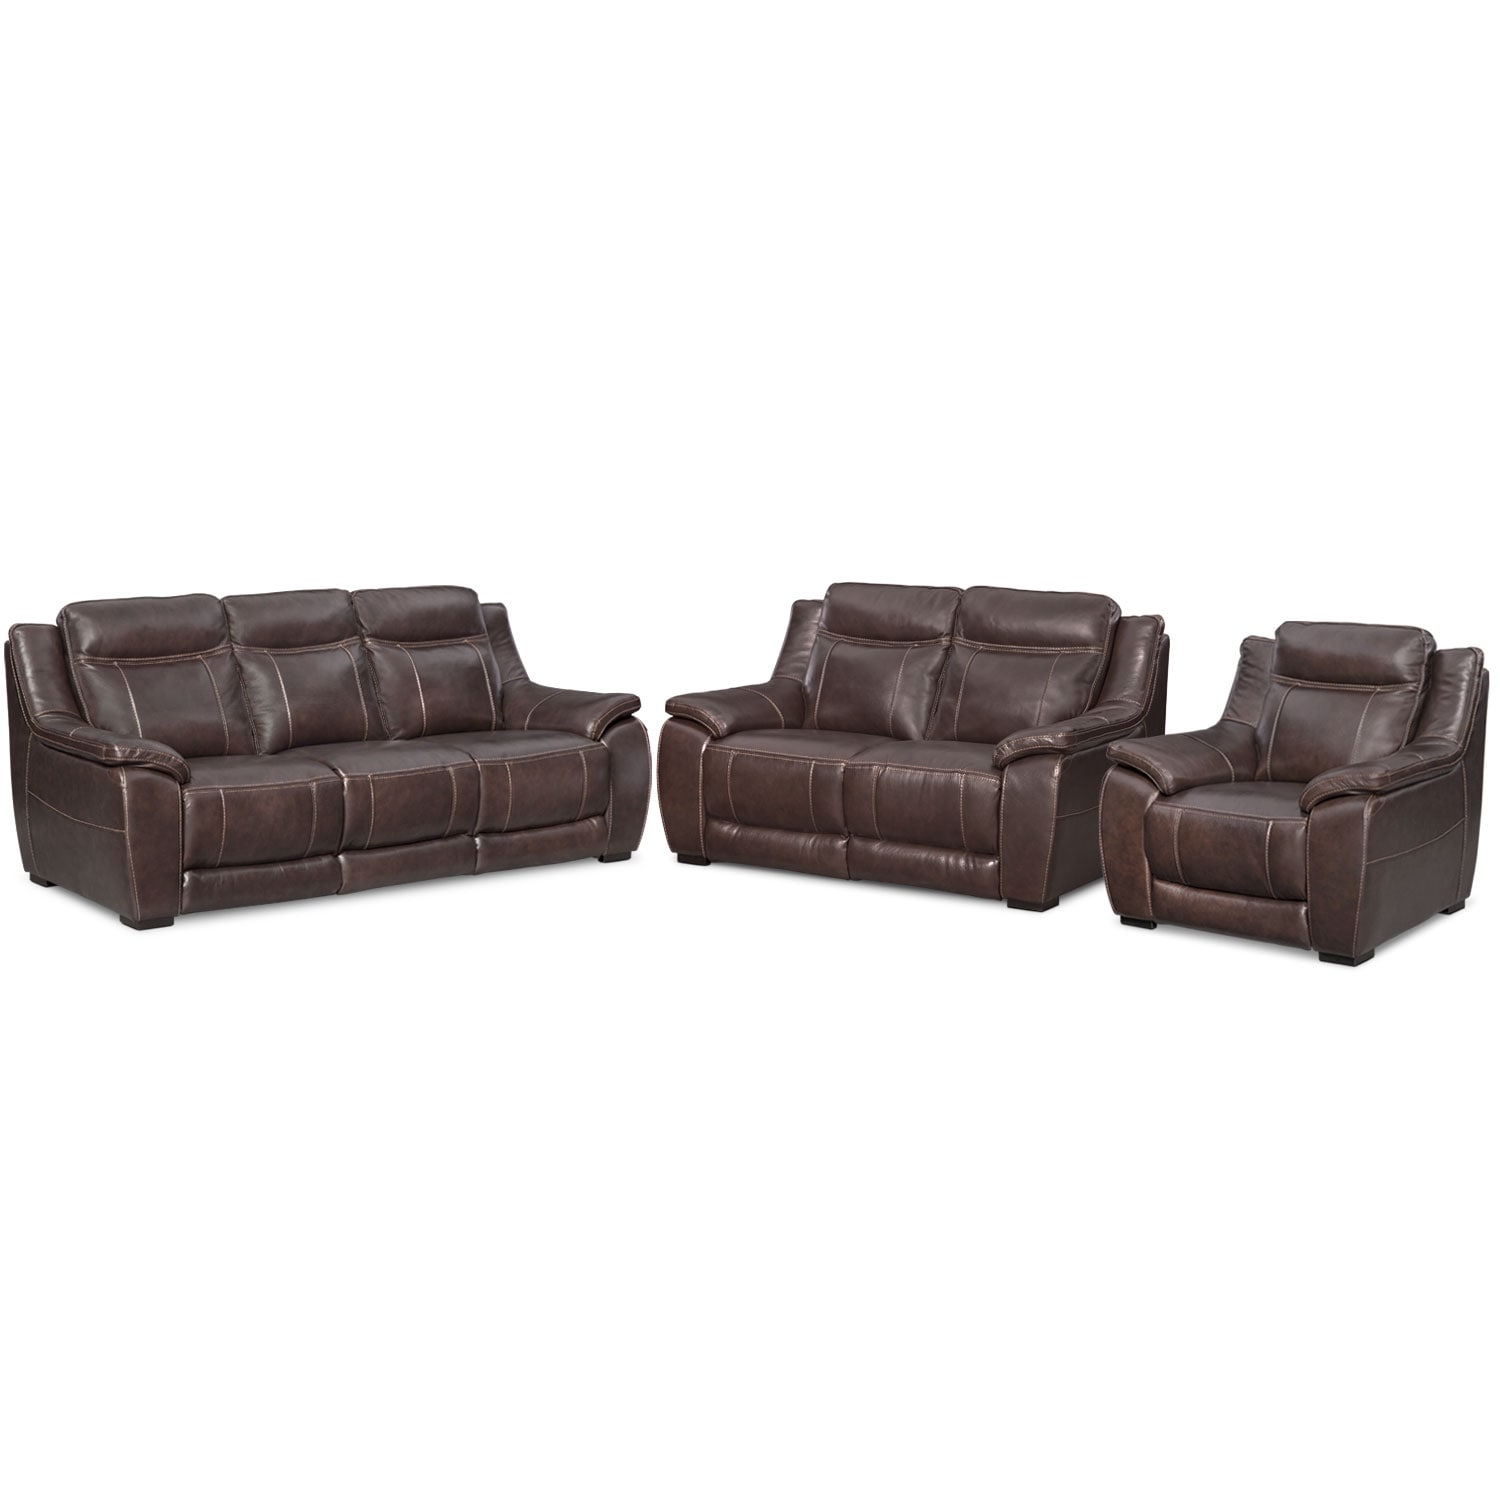 Lido Sofa Loveseat and Chair Set Brown